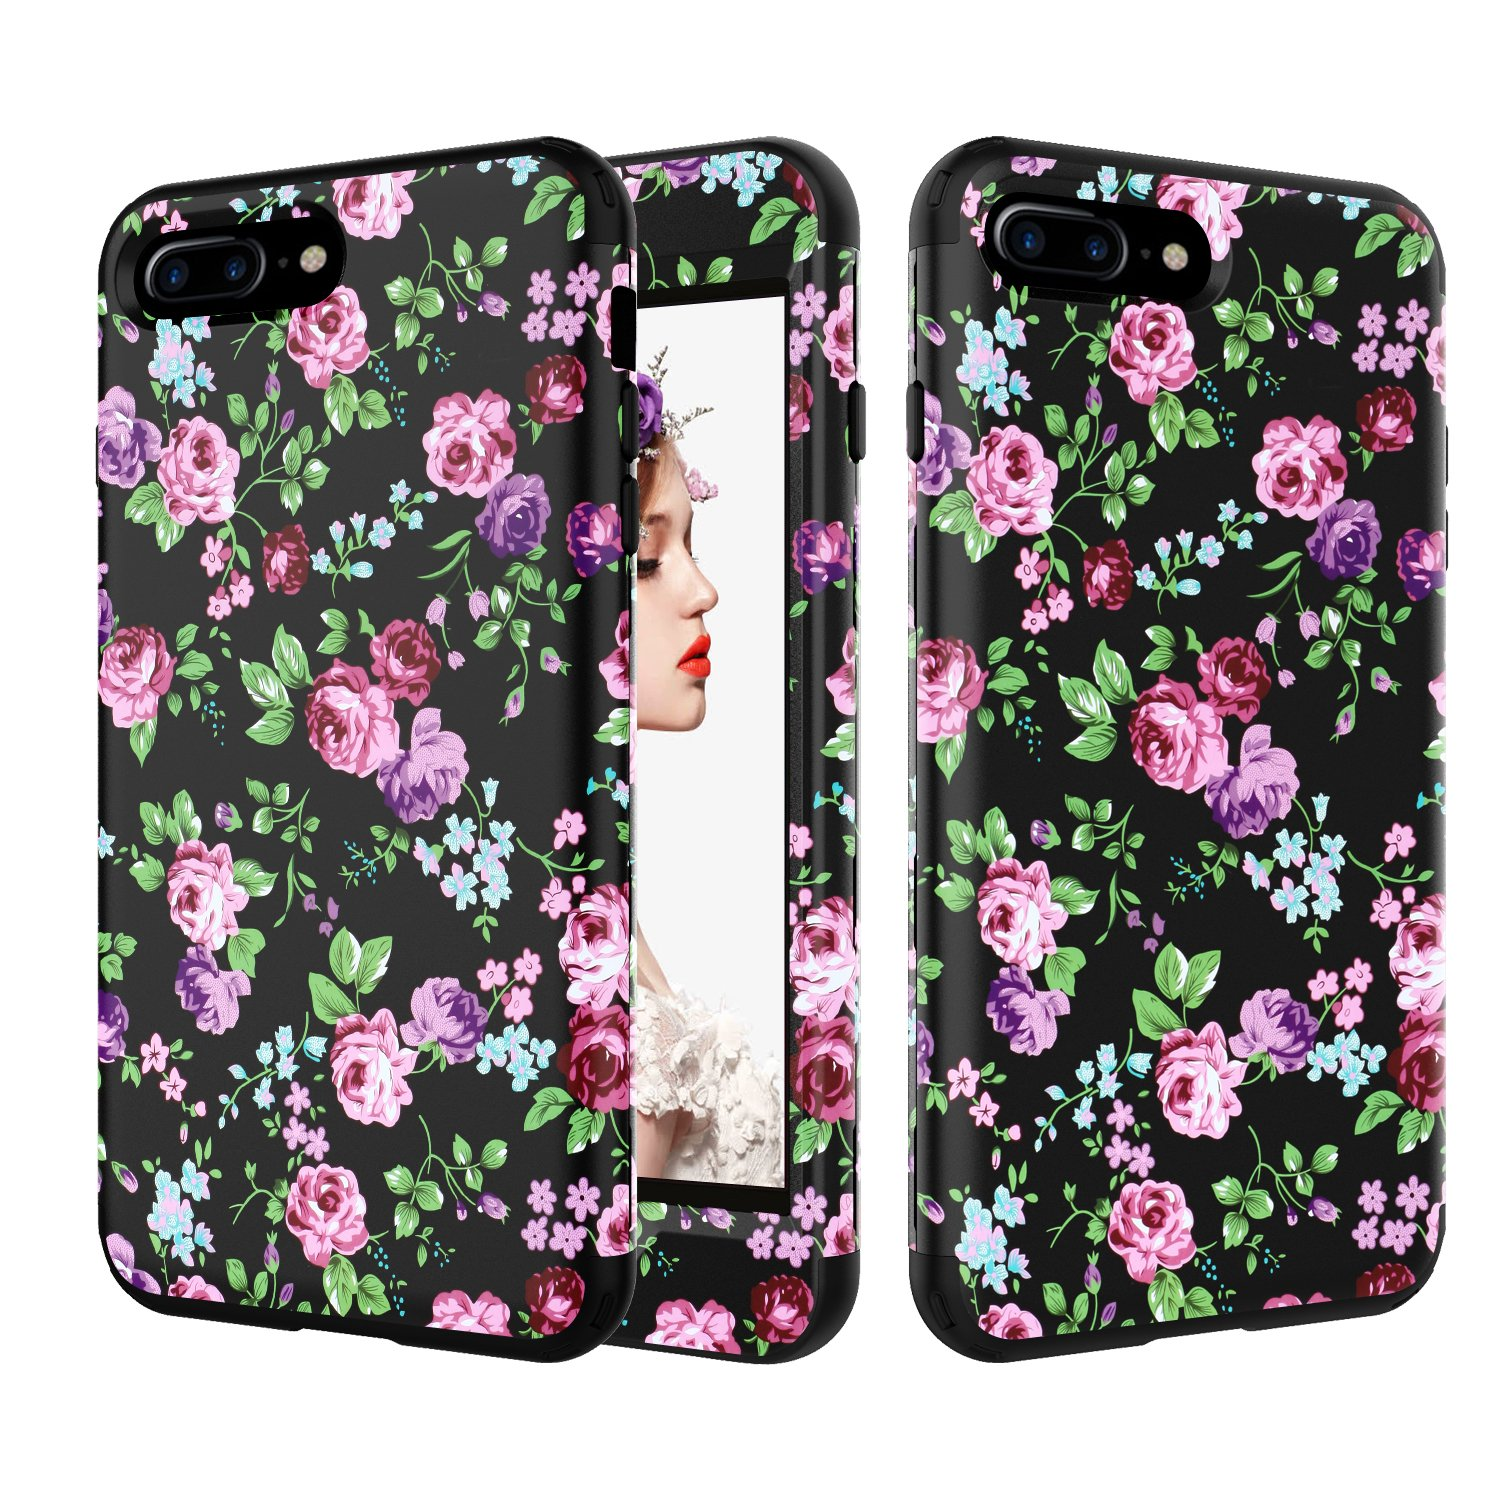 iPhone 8 Case Pink Flamingos Design, Gostyle iPhone 7 Cover 3 Layer Protection Hybrid Shockproof Heavy Duty Hard PC + Soft Slicone Rubber High Impact Resistant Cellphone Protective Case